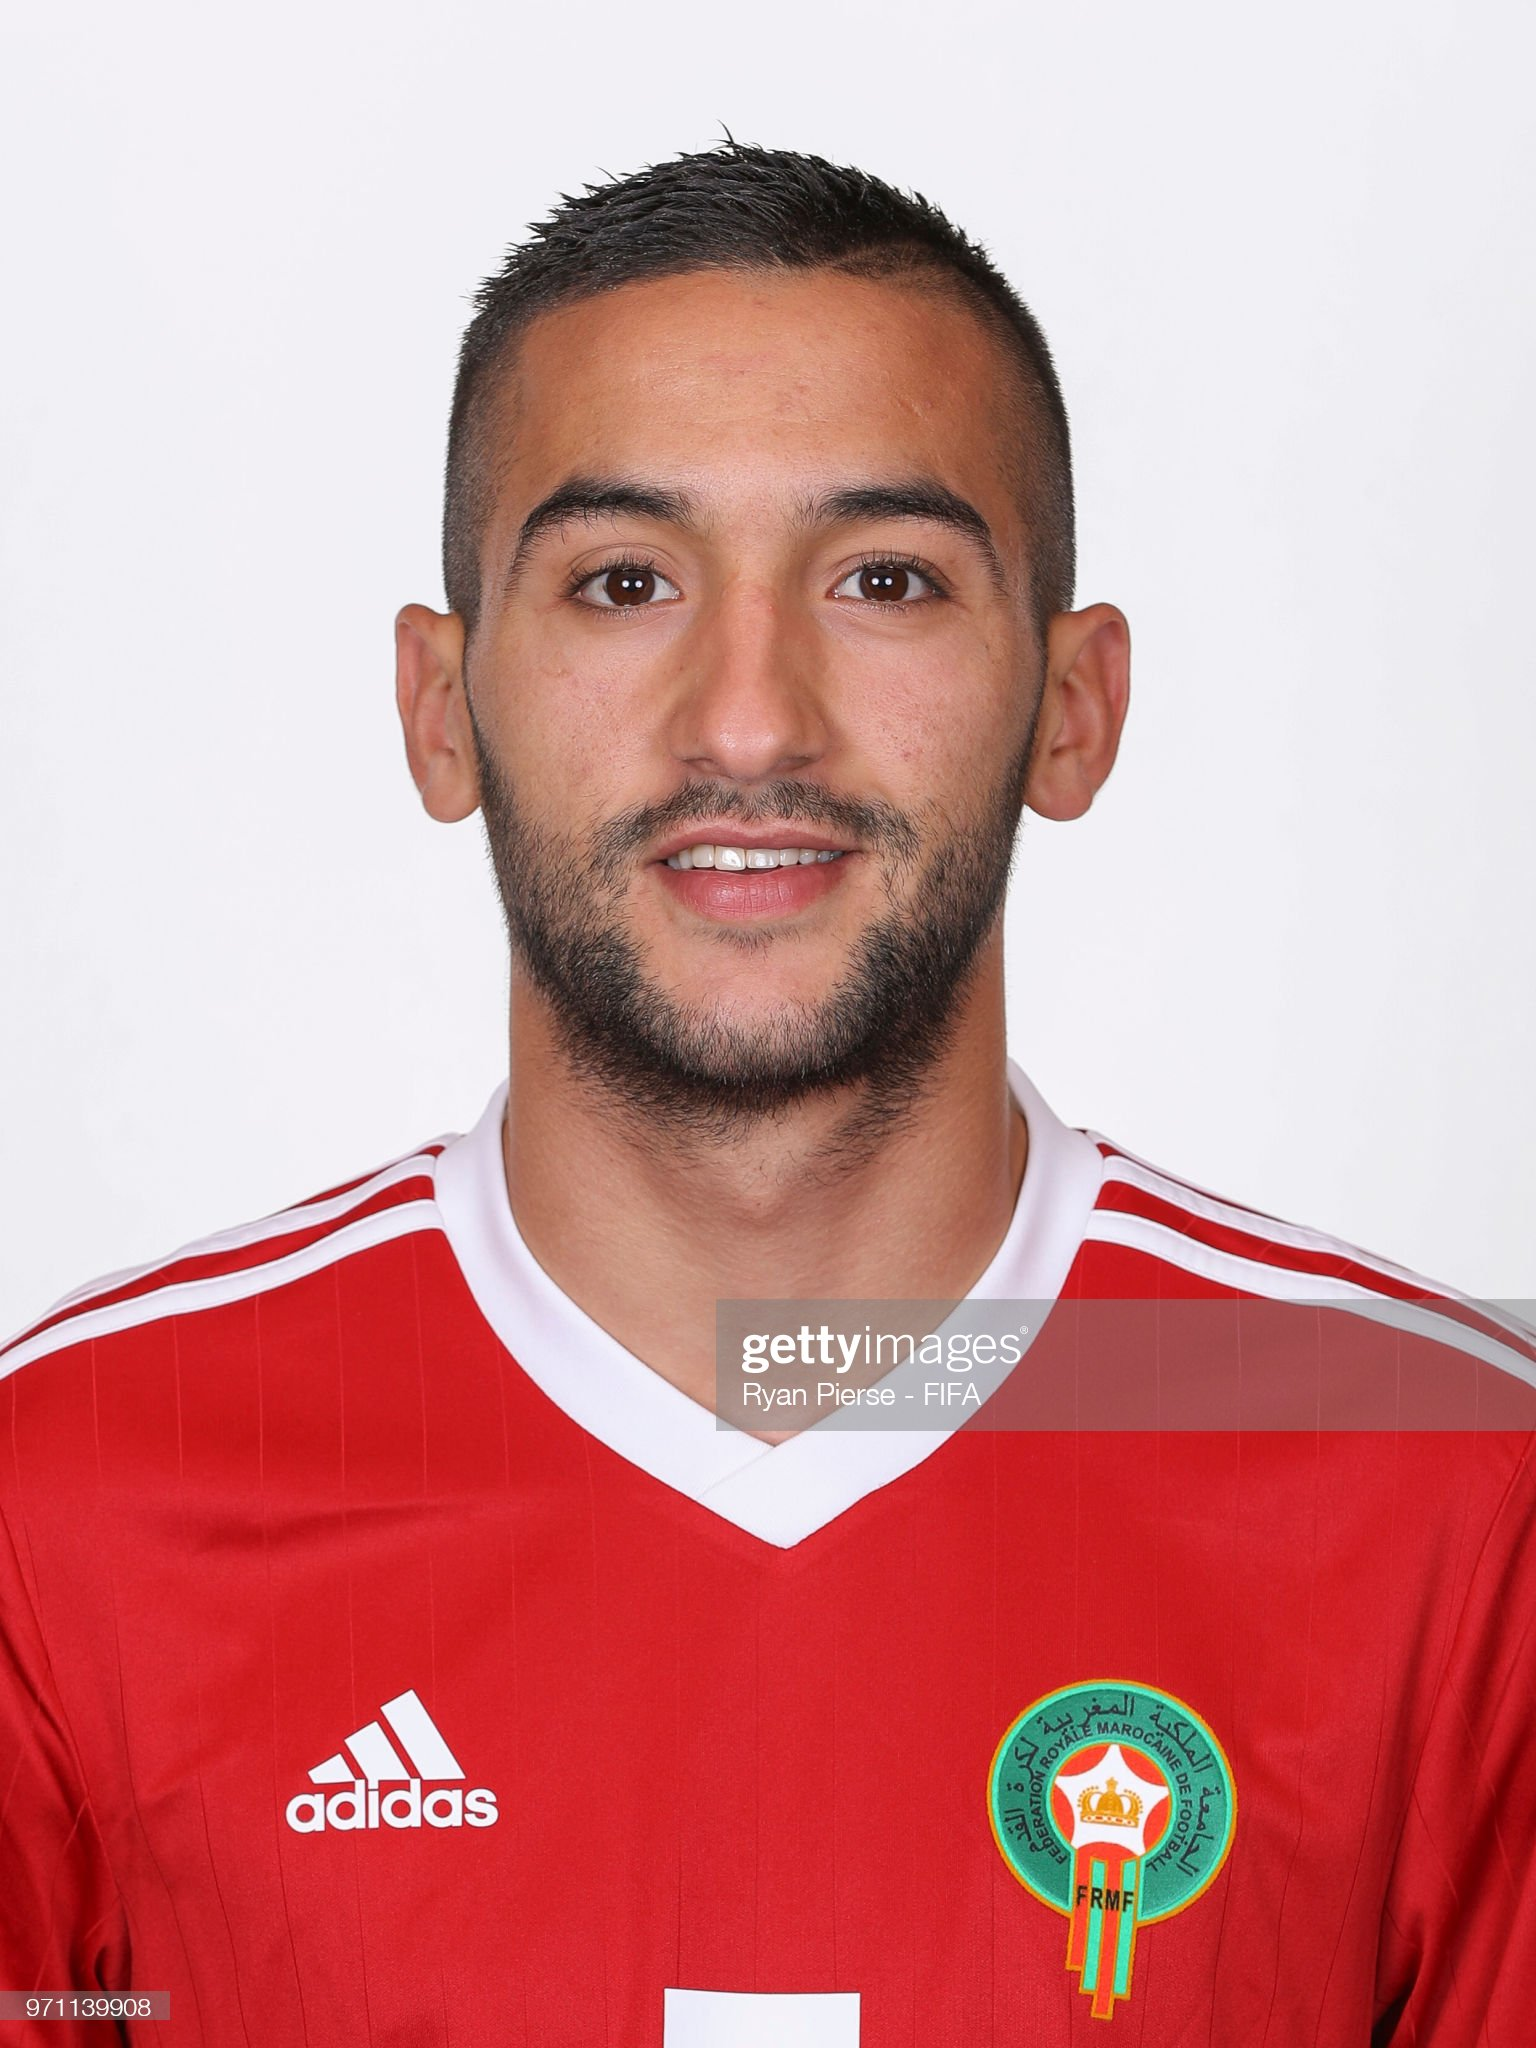 Norteafricanos Hakim-ziyech-of-morocco-poses-during-the-official-fifa-world-cup-2018-picture-id971139908?s=2048x2048